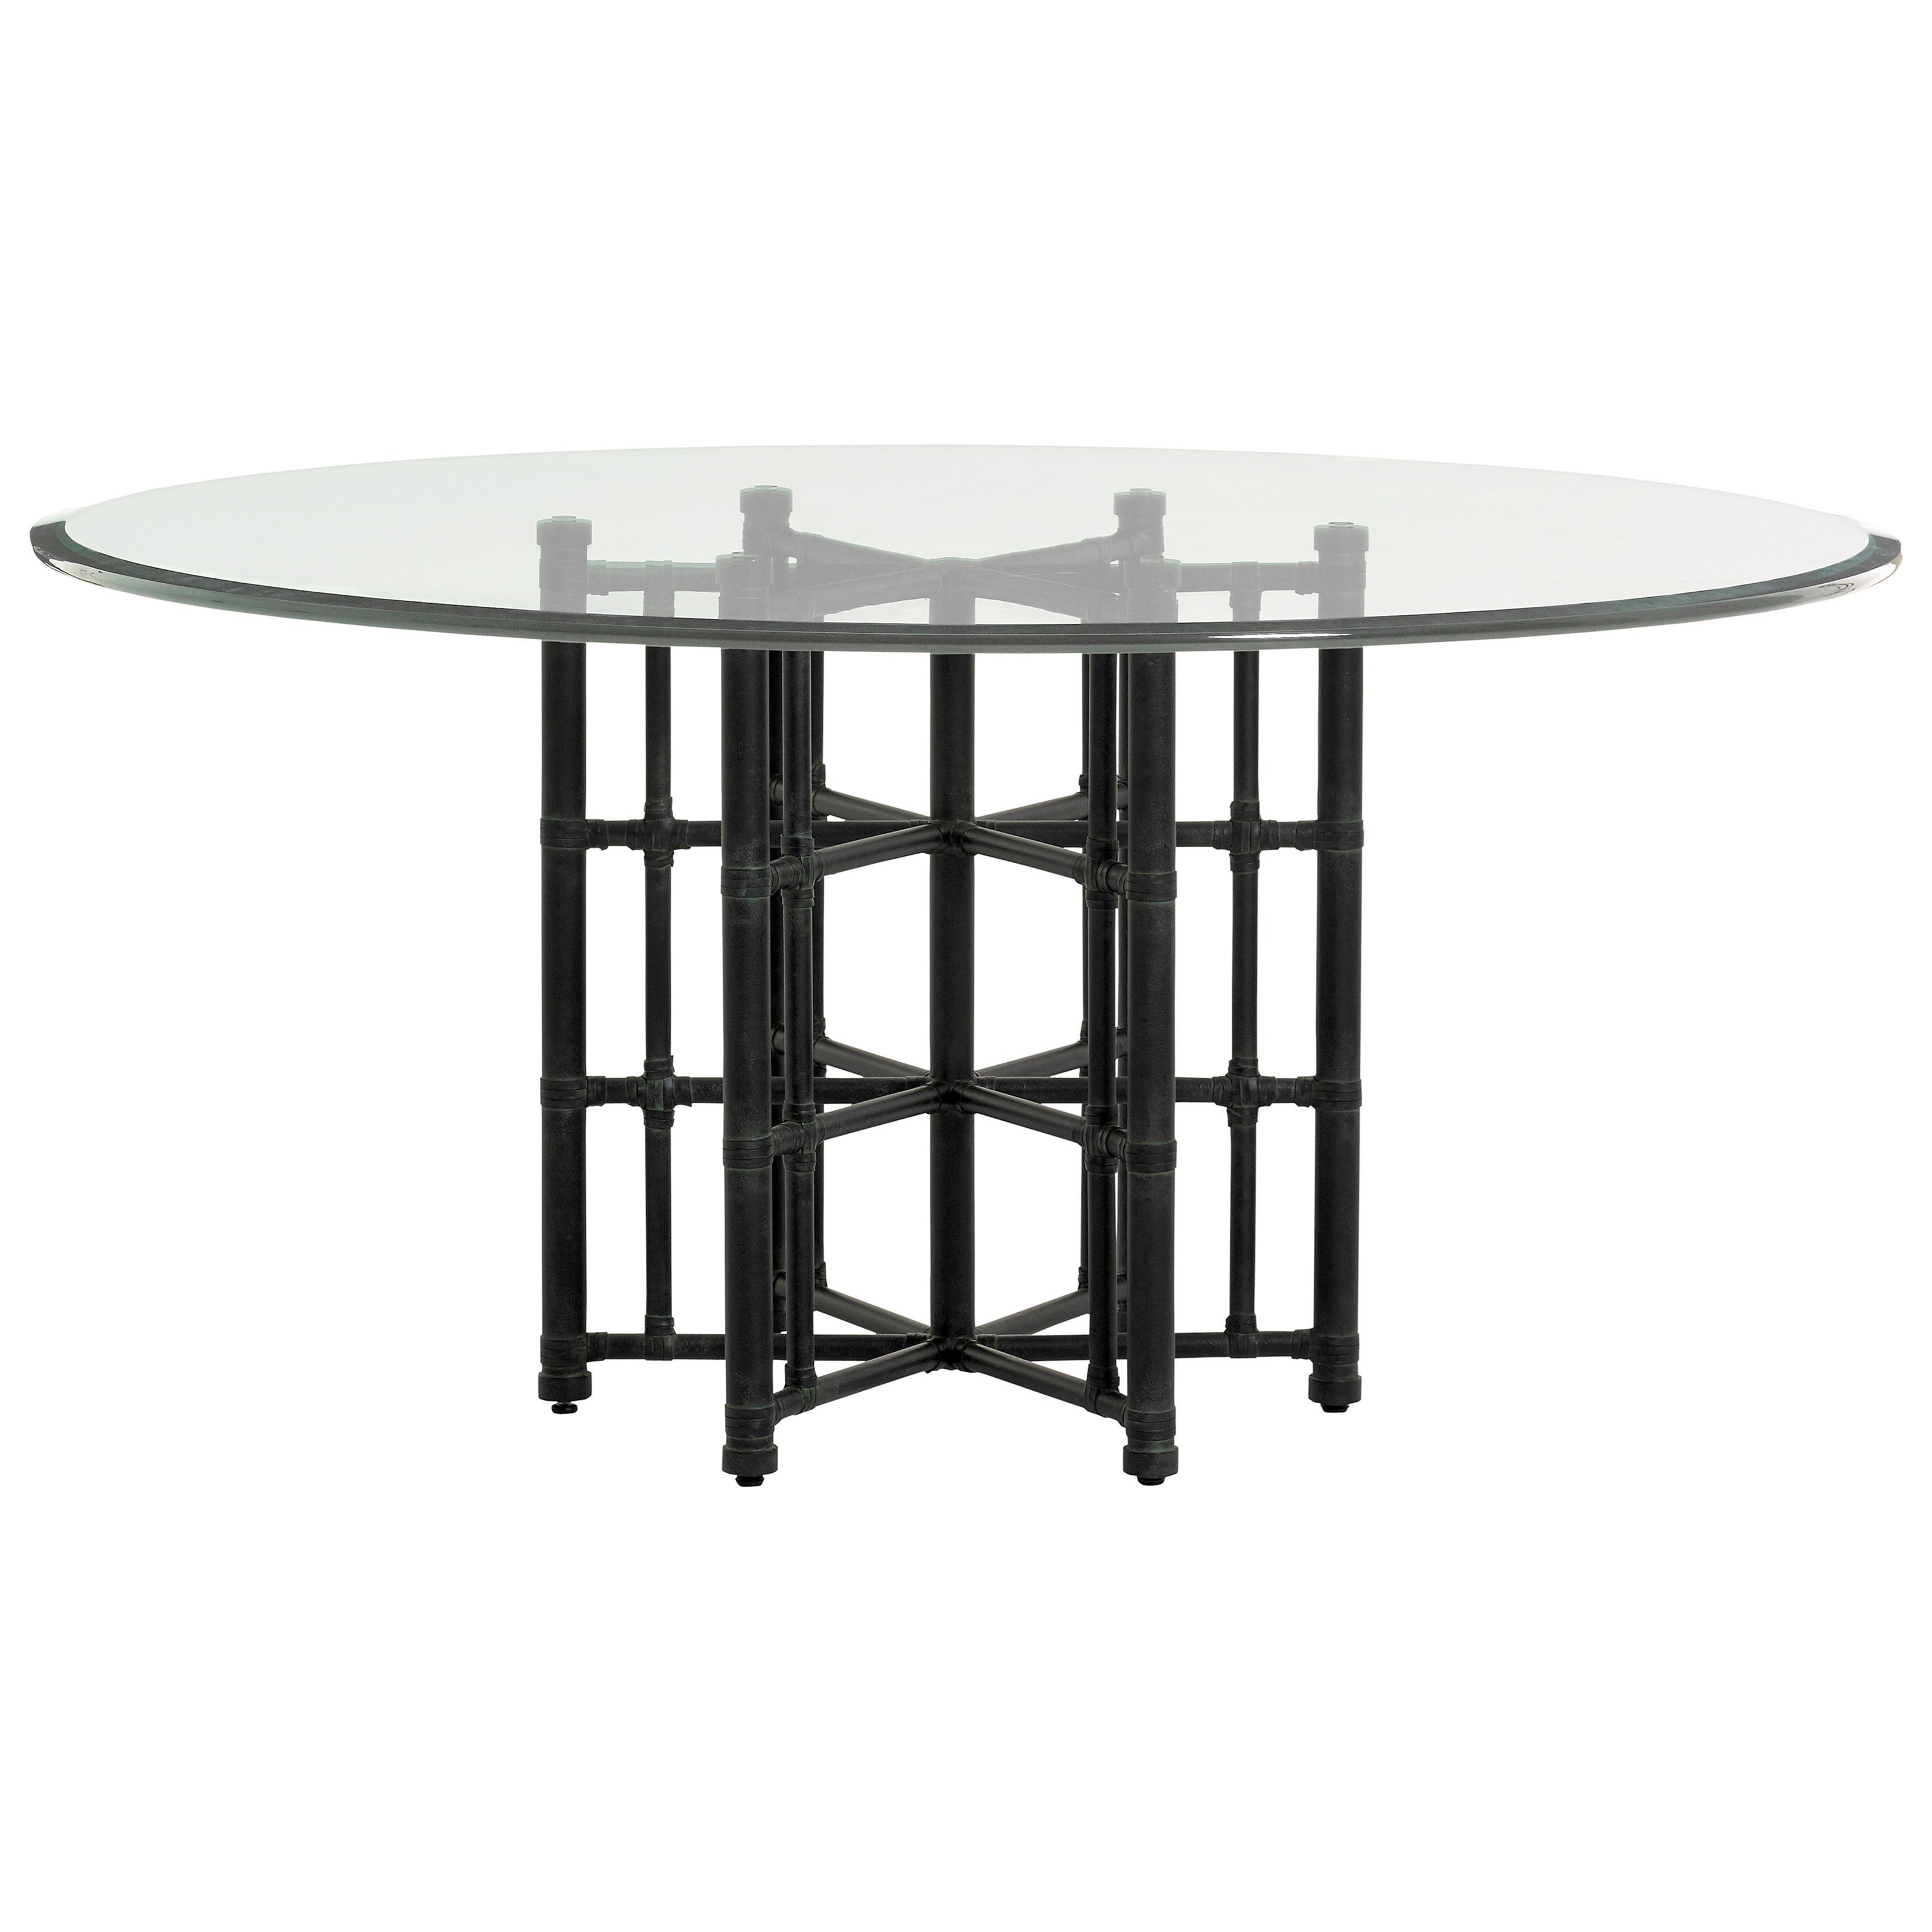 "Twin Palms Stellaris Dining Table 60"" Glass Top by Tommy Bahama Home at Baer's Furniture"